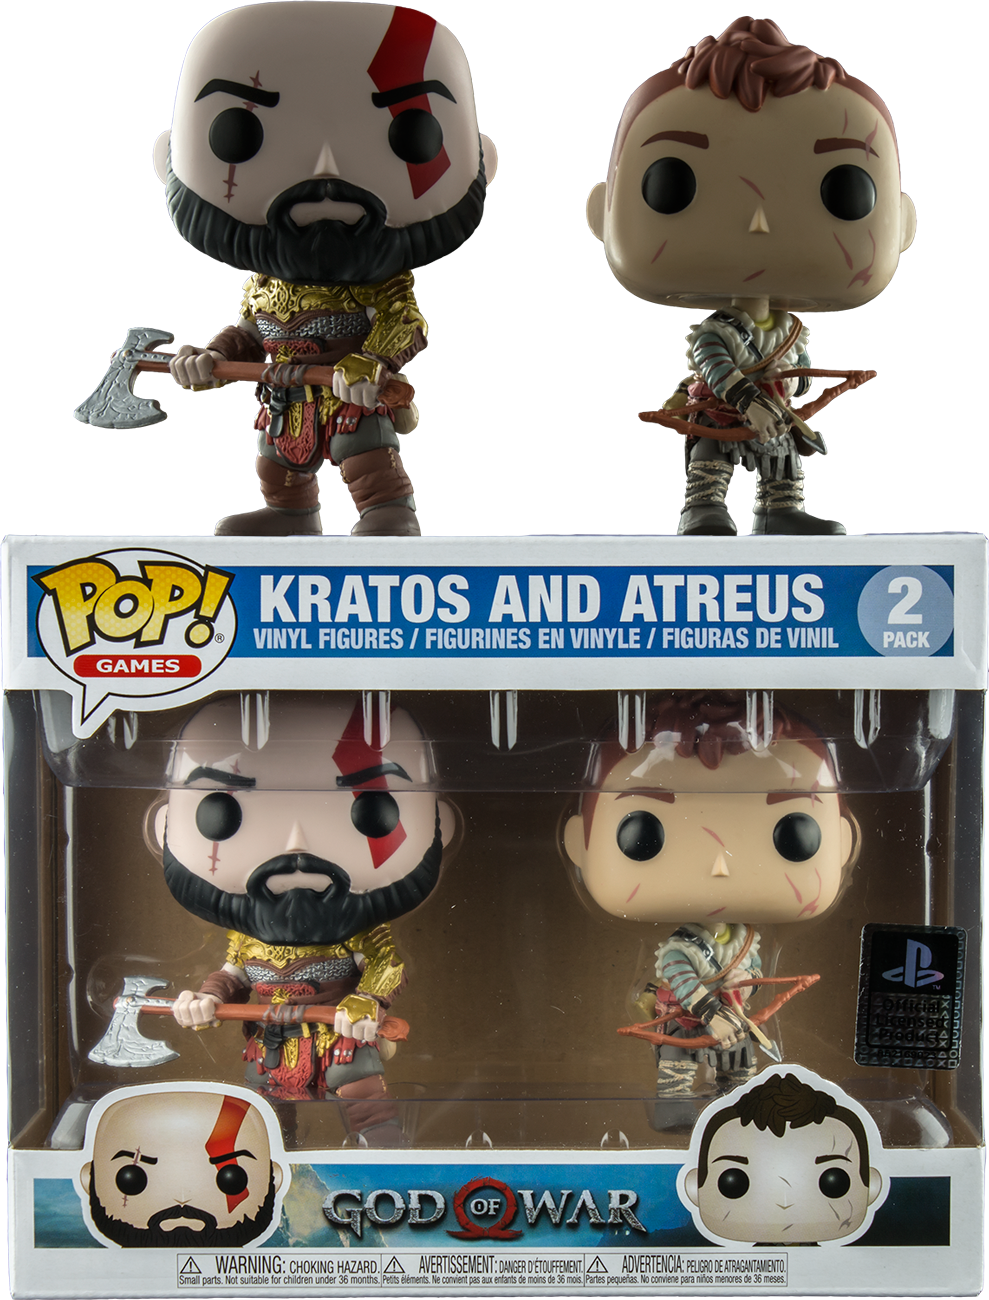 God of war 3 nemean cestus png. Game informer how kratos